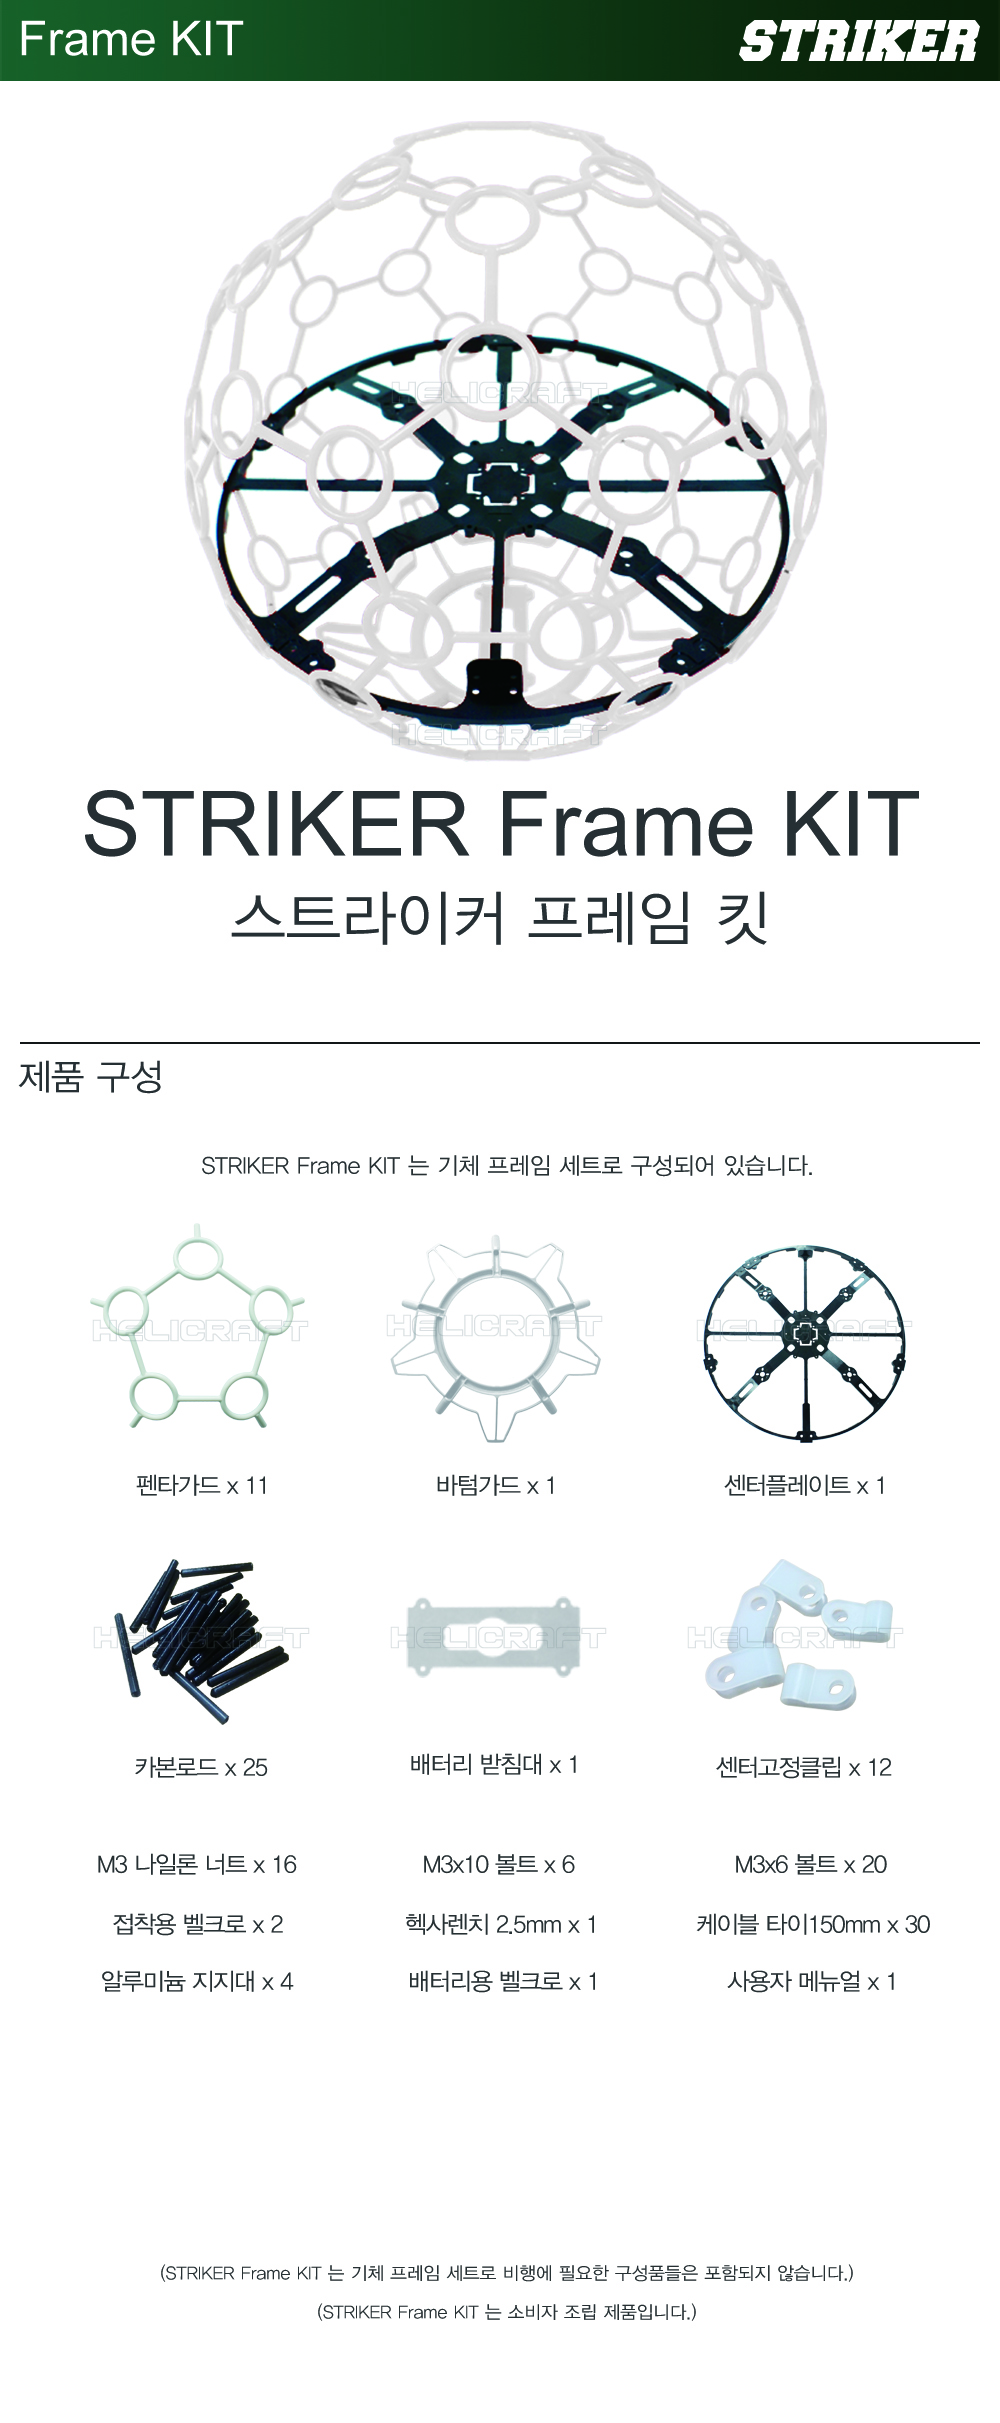 [CYNDRONE] STRIKER Frame KIT'></p><p><br></p><p><br></p><p><a style=